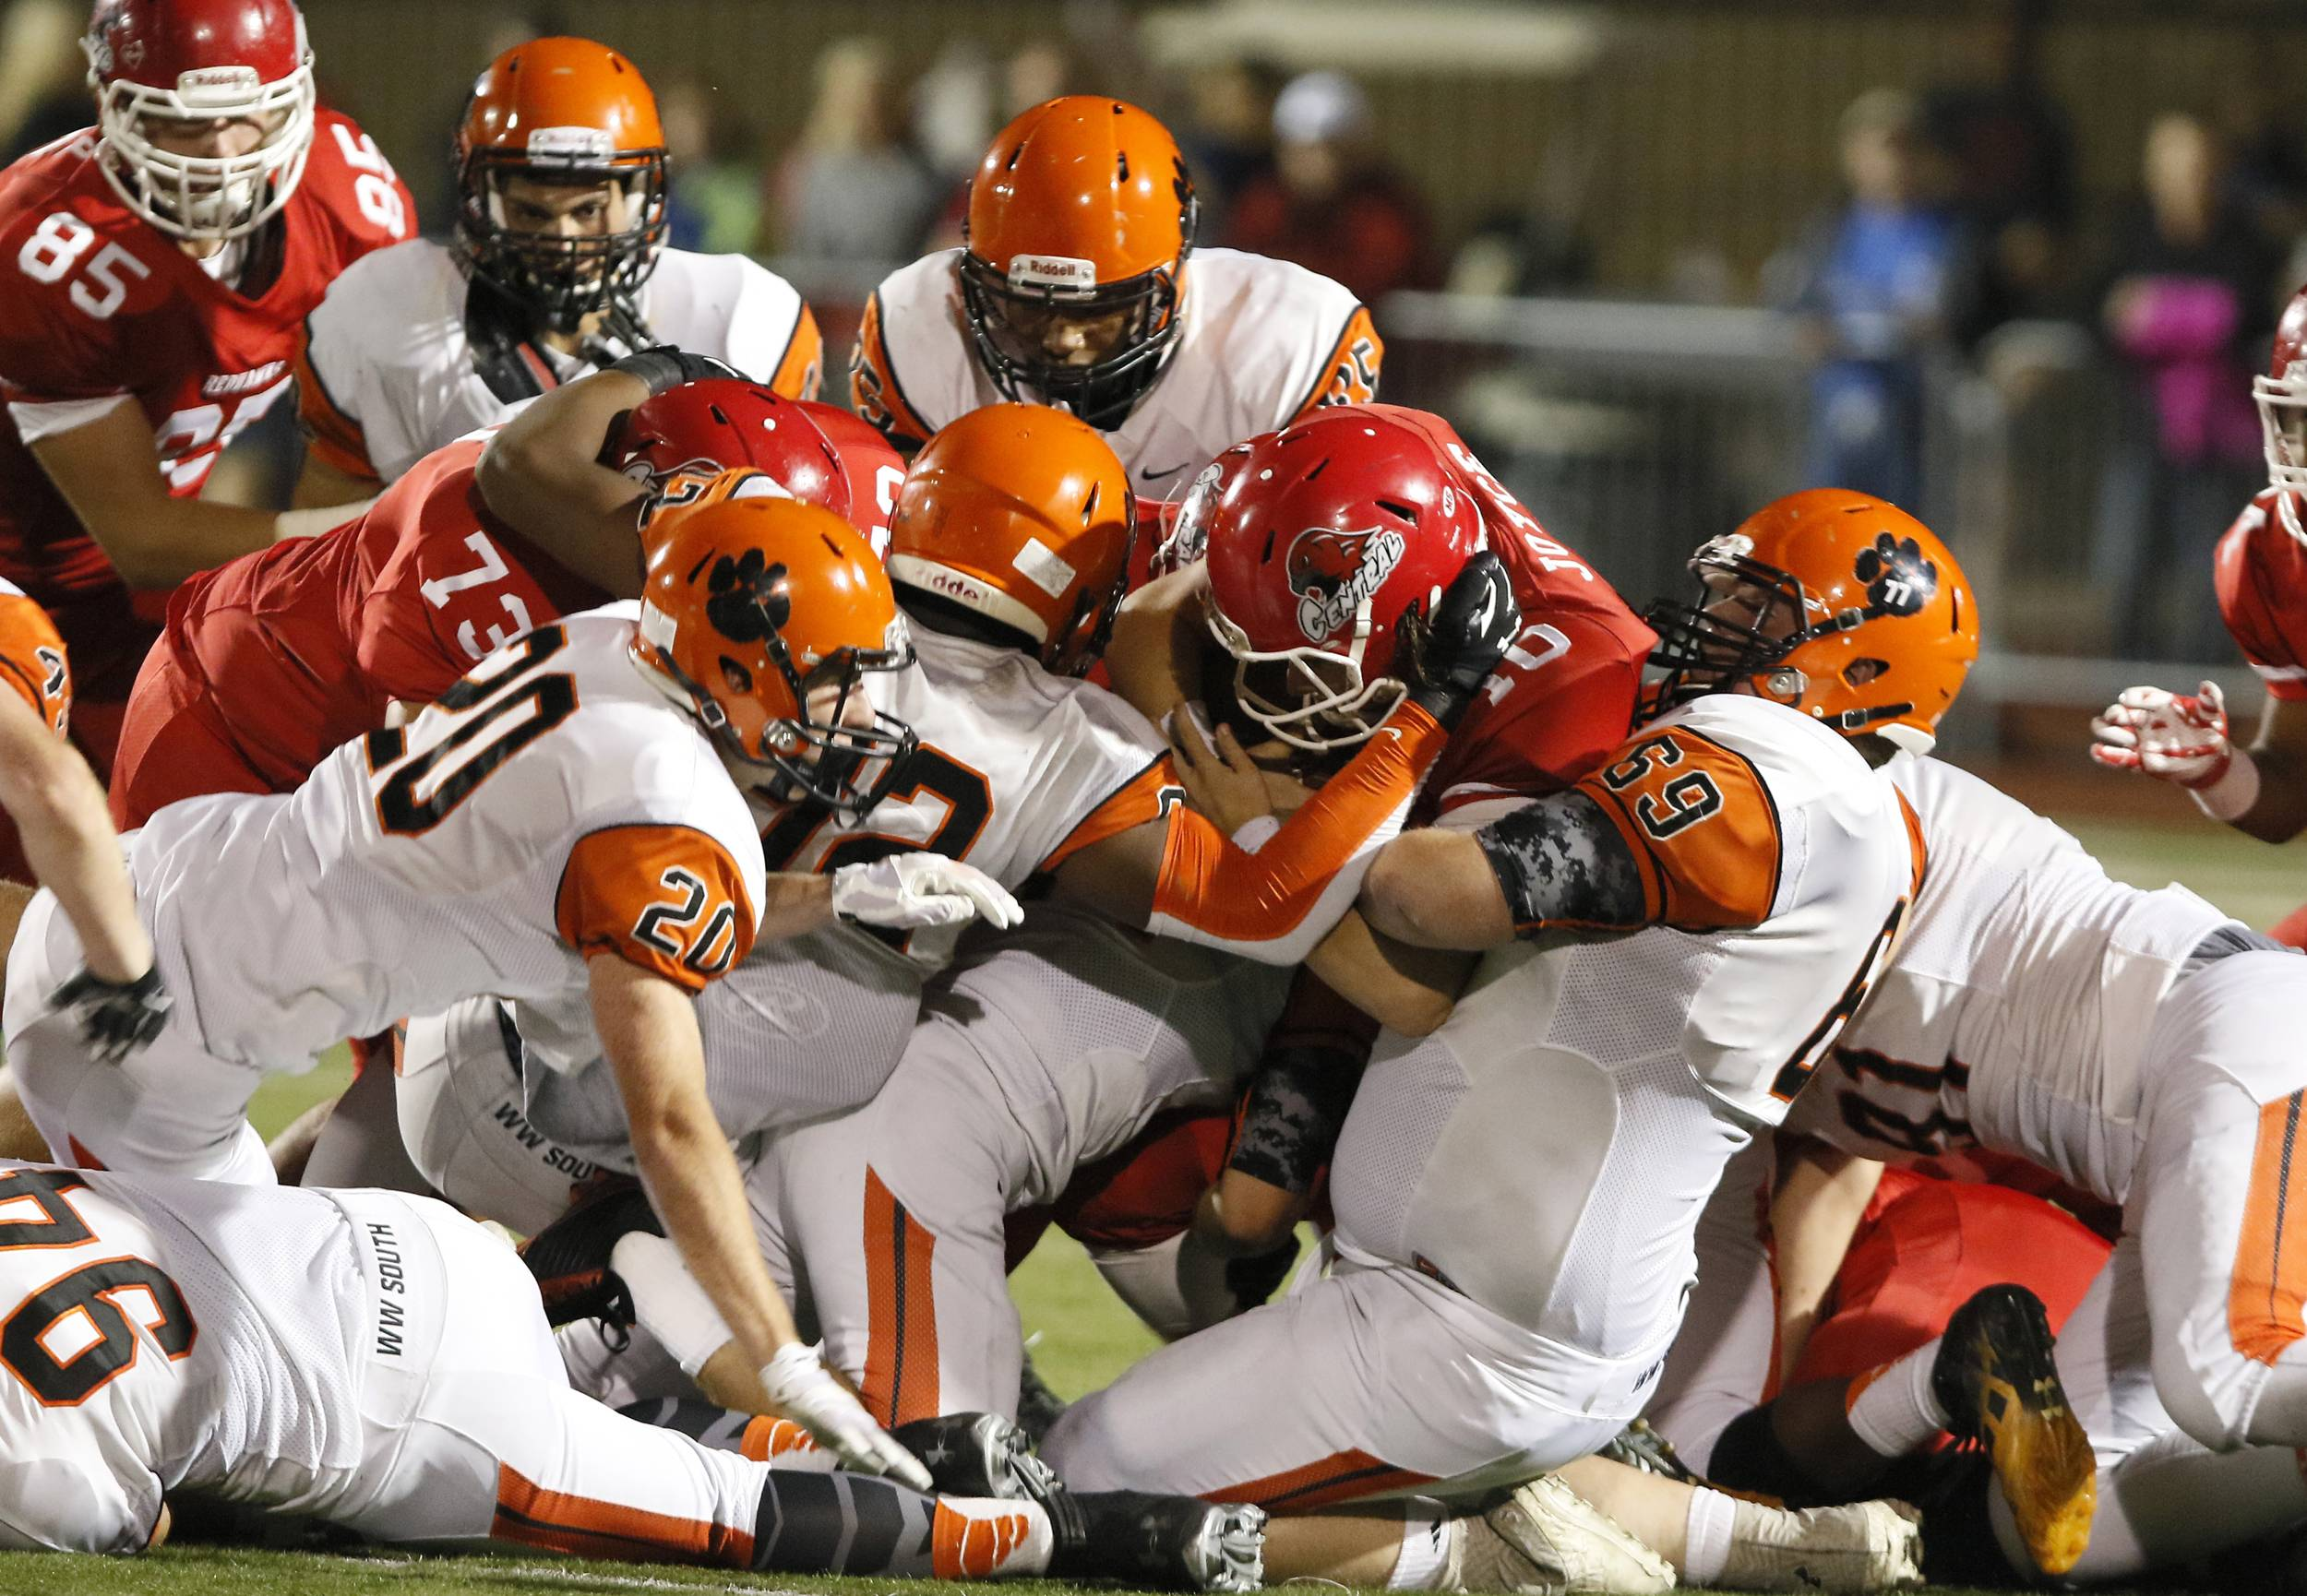 Naperville Central defeated Wheaton Warrenville South 20-8 in Week 5 action.